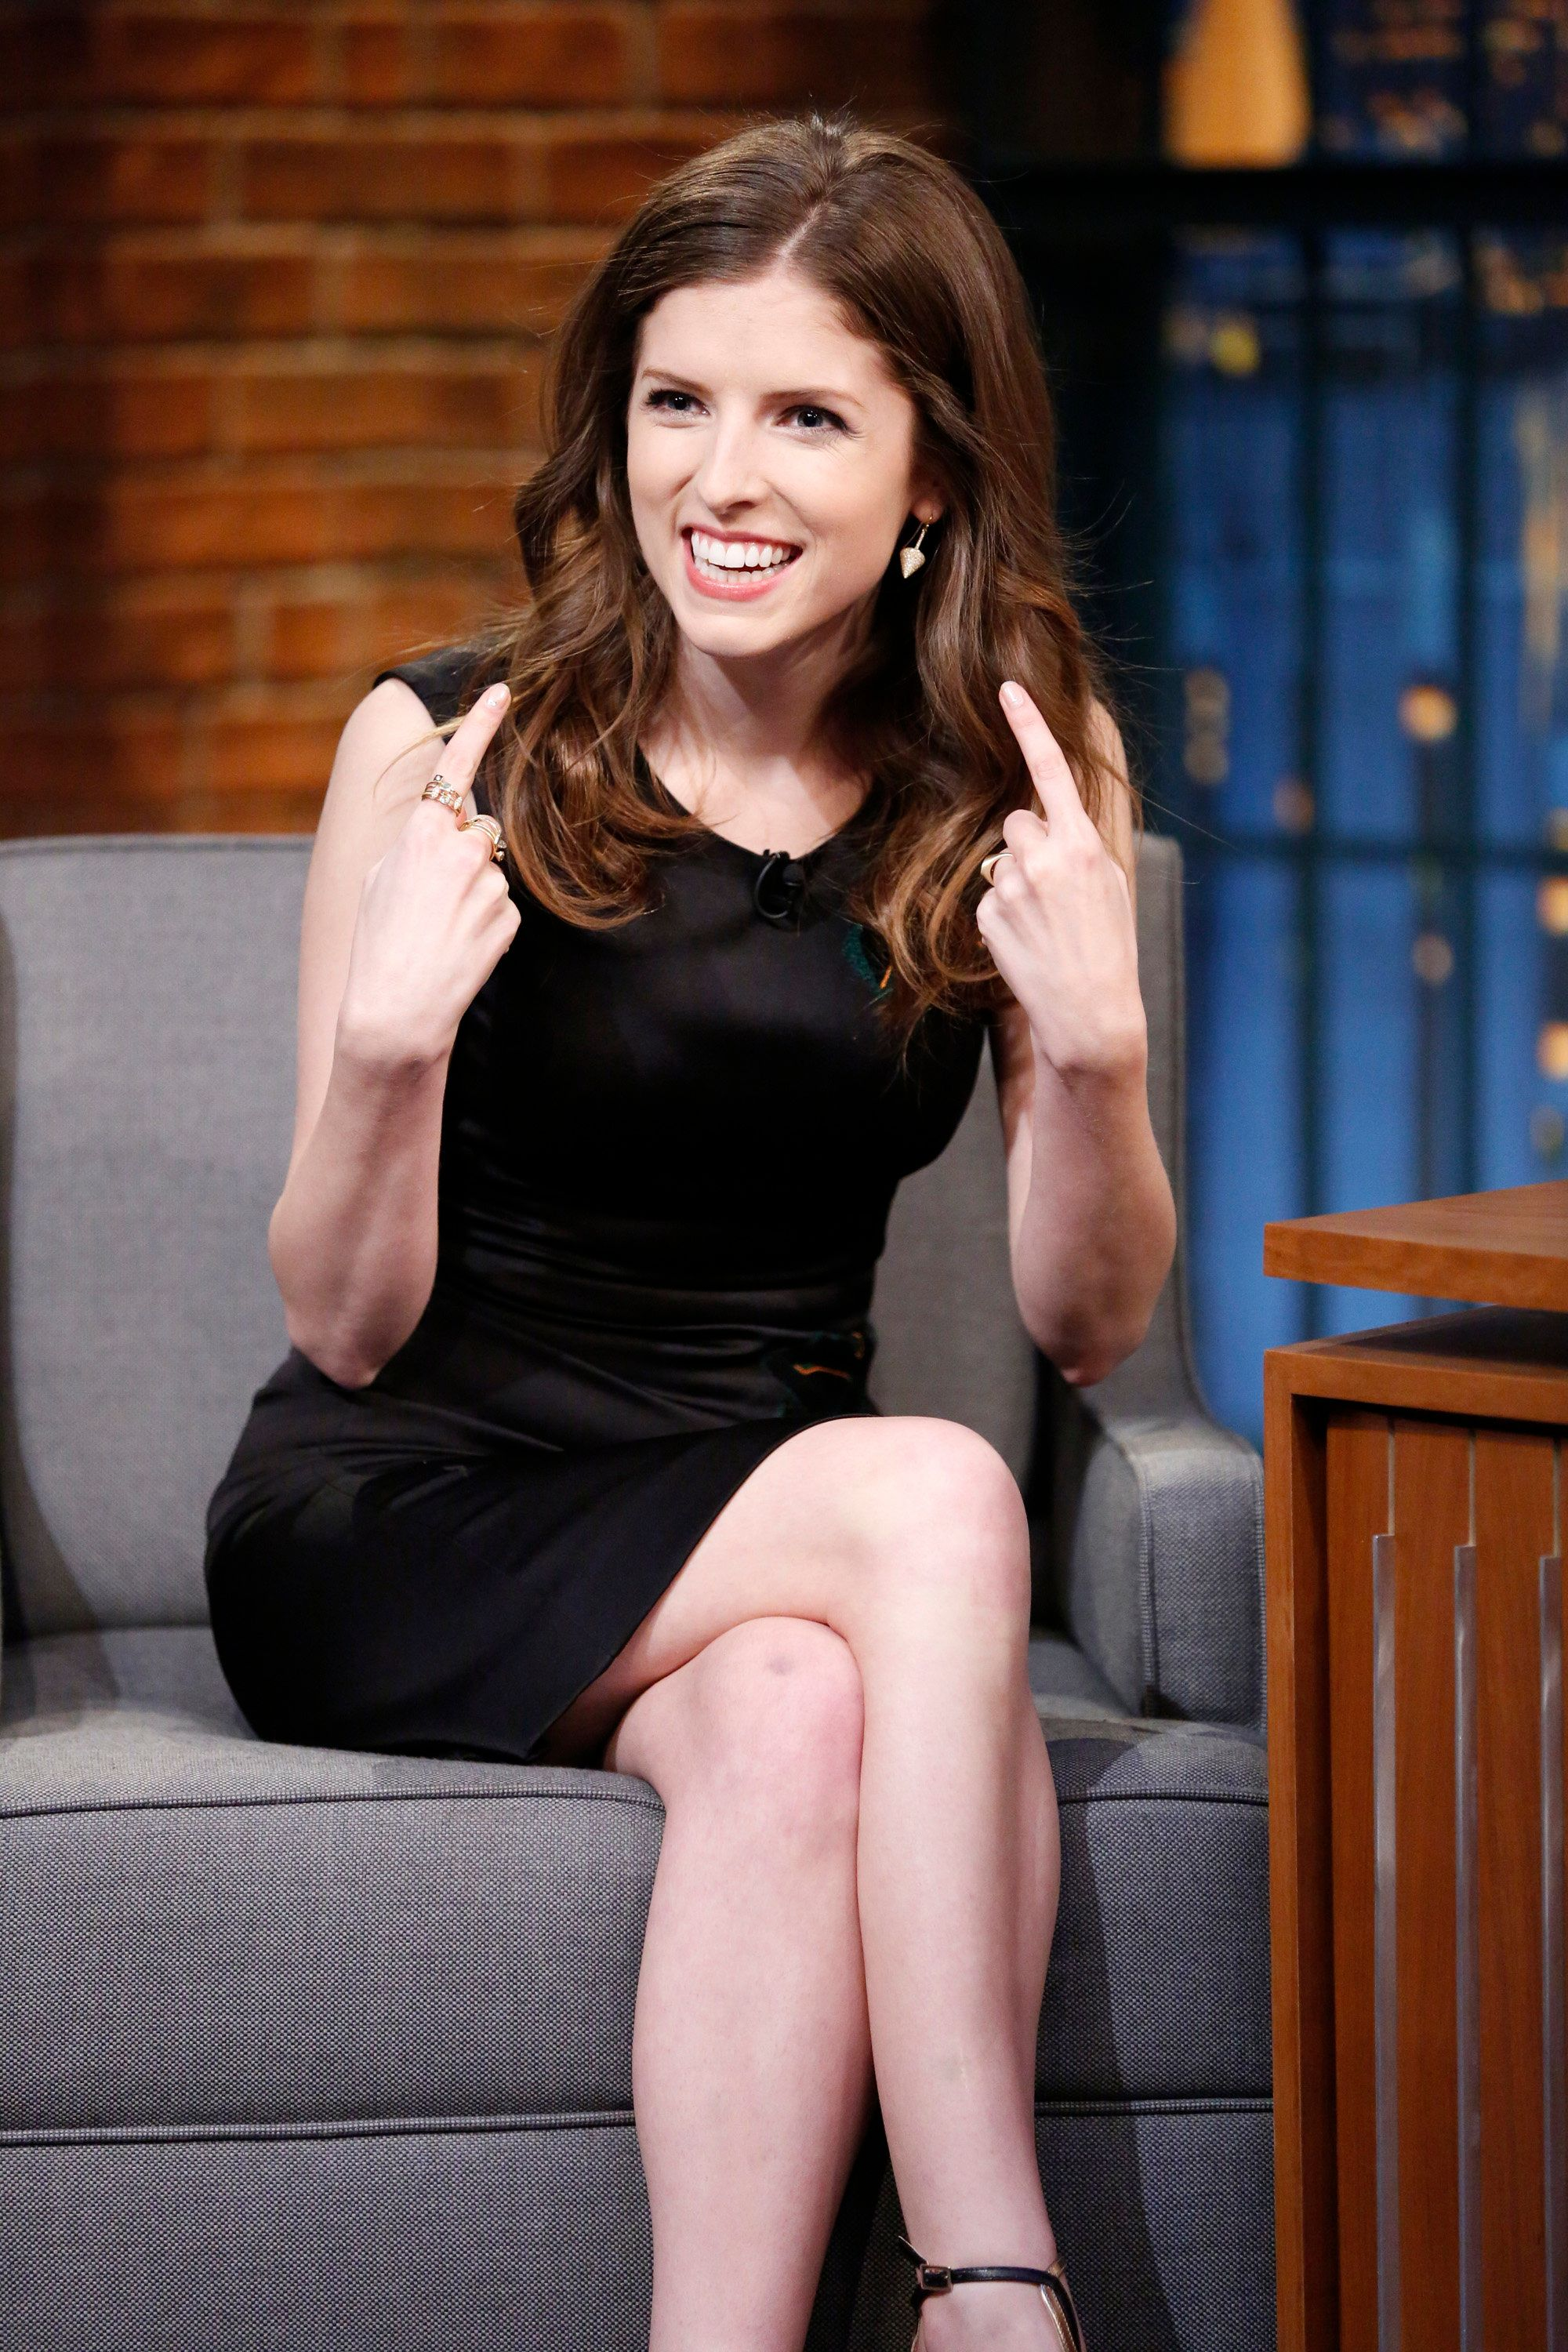 LATE NIGHT WITH SETH MEYERS -- Episode 207 -- Pictured: Actress Anna Kendrick during an interview on May 14, 2015 -- (Photo by: Lloyd Bishop/NBC/NBCU Photo Bank via Getty Images)